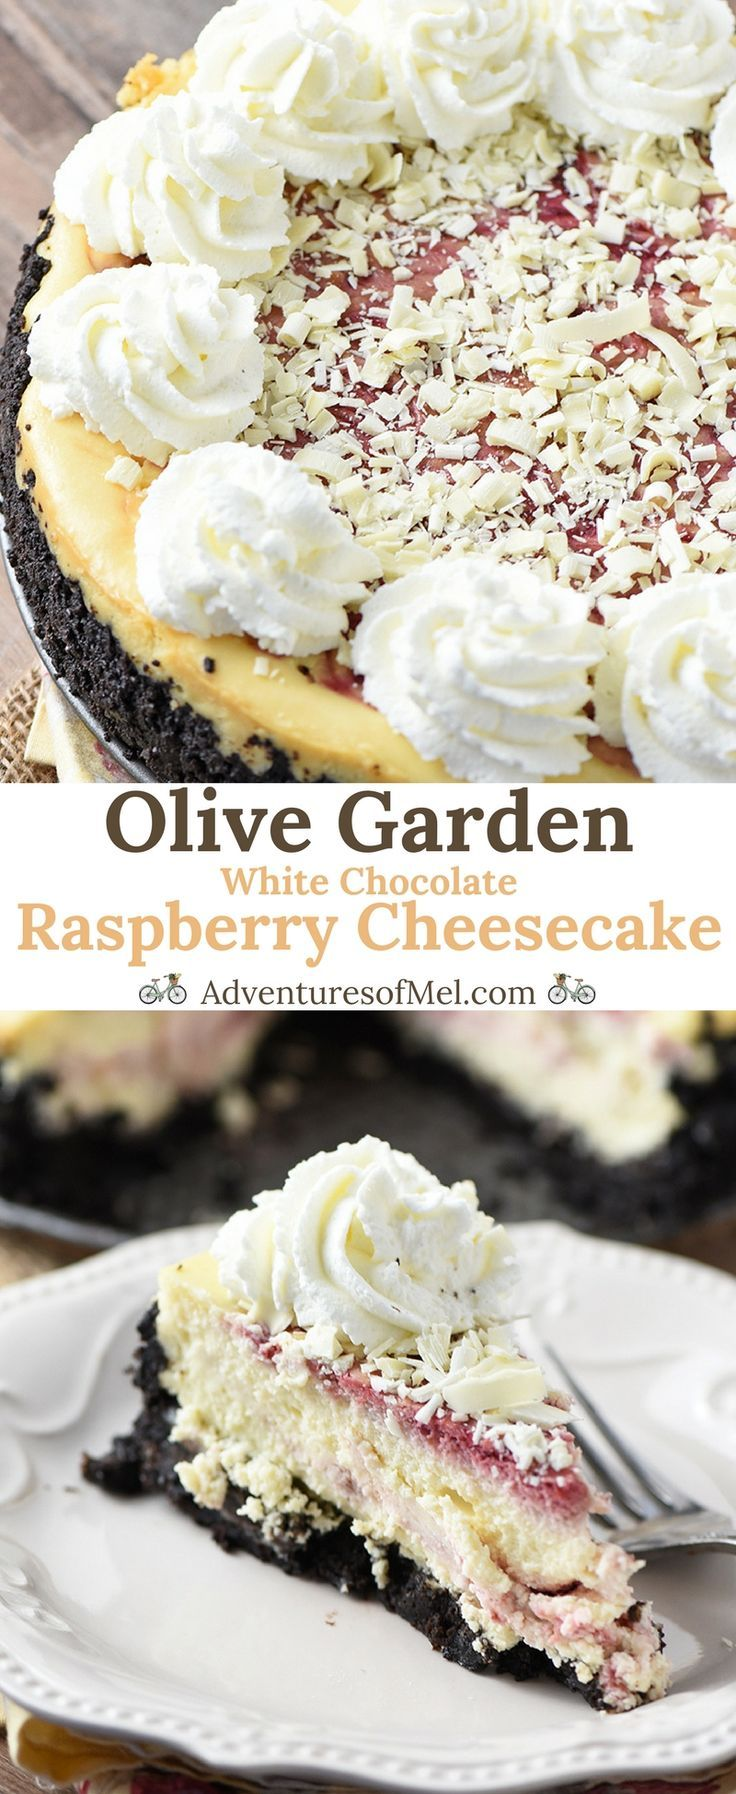 Olive Garden White Chocolate Raspberry Cheesecake is hands down my favorite restaurant dessert (we go way back). Heavenly copycat recipe made with a chocolate cookie crust and homemade raspberry swirl. #cheesecake #copycat #recipes #dessert #raspberry #chocolate #OliveGarden